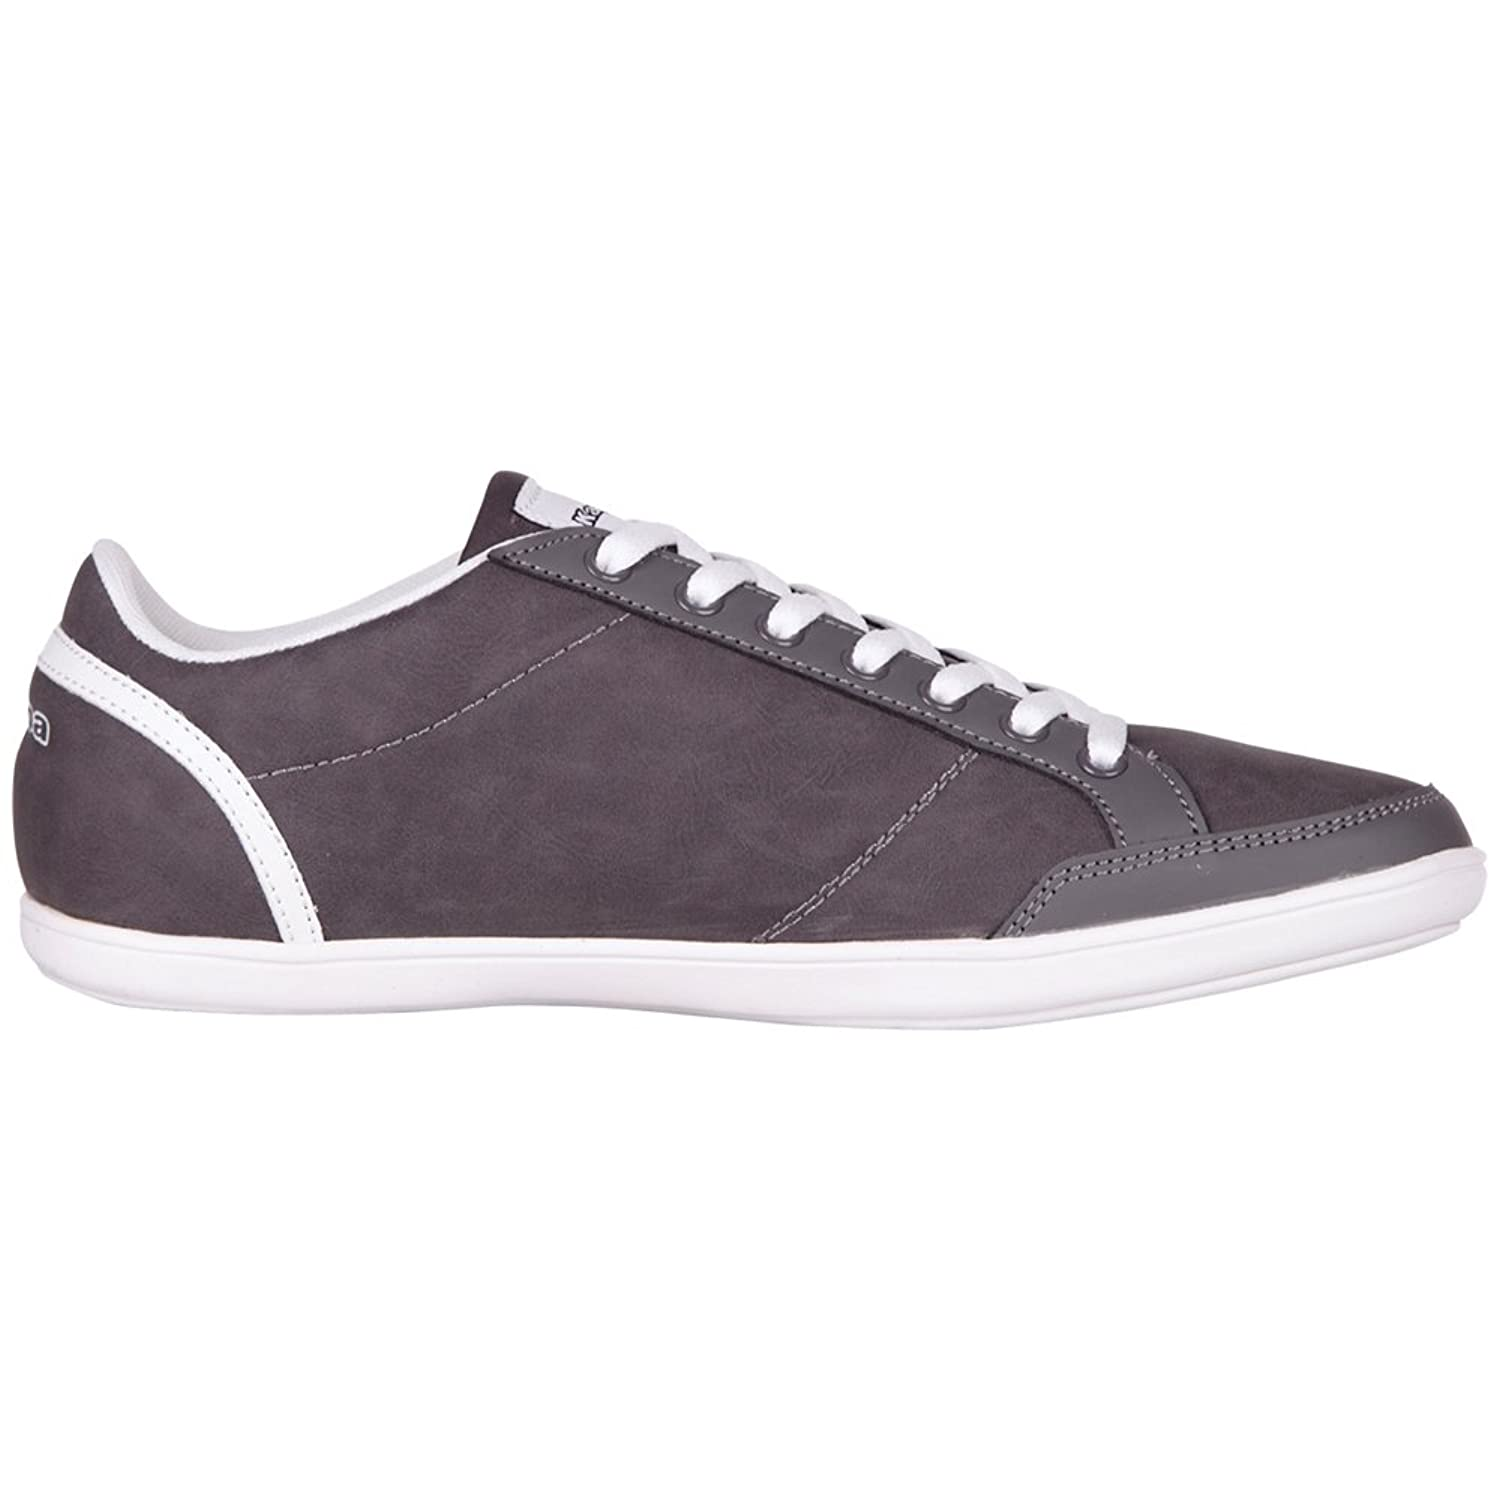 Kappa Kent Low Footwear Men, Synthetic - Zapatillas, color Gris (Grey/White 1610), talla 40 EU (6.5 Herren UK)